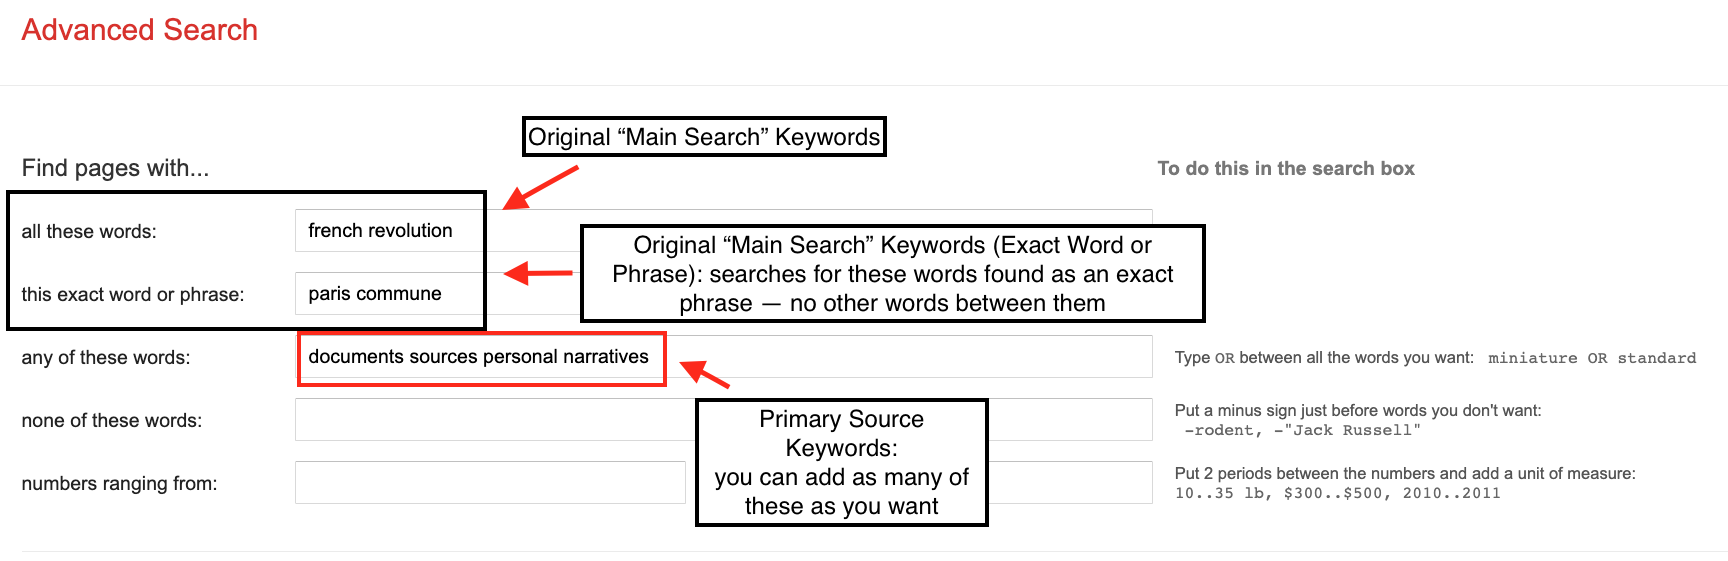 Google Advanced Search with Main Search and primary source keywords